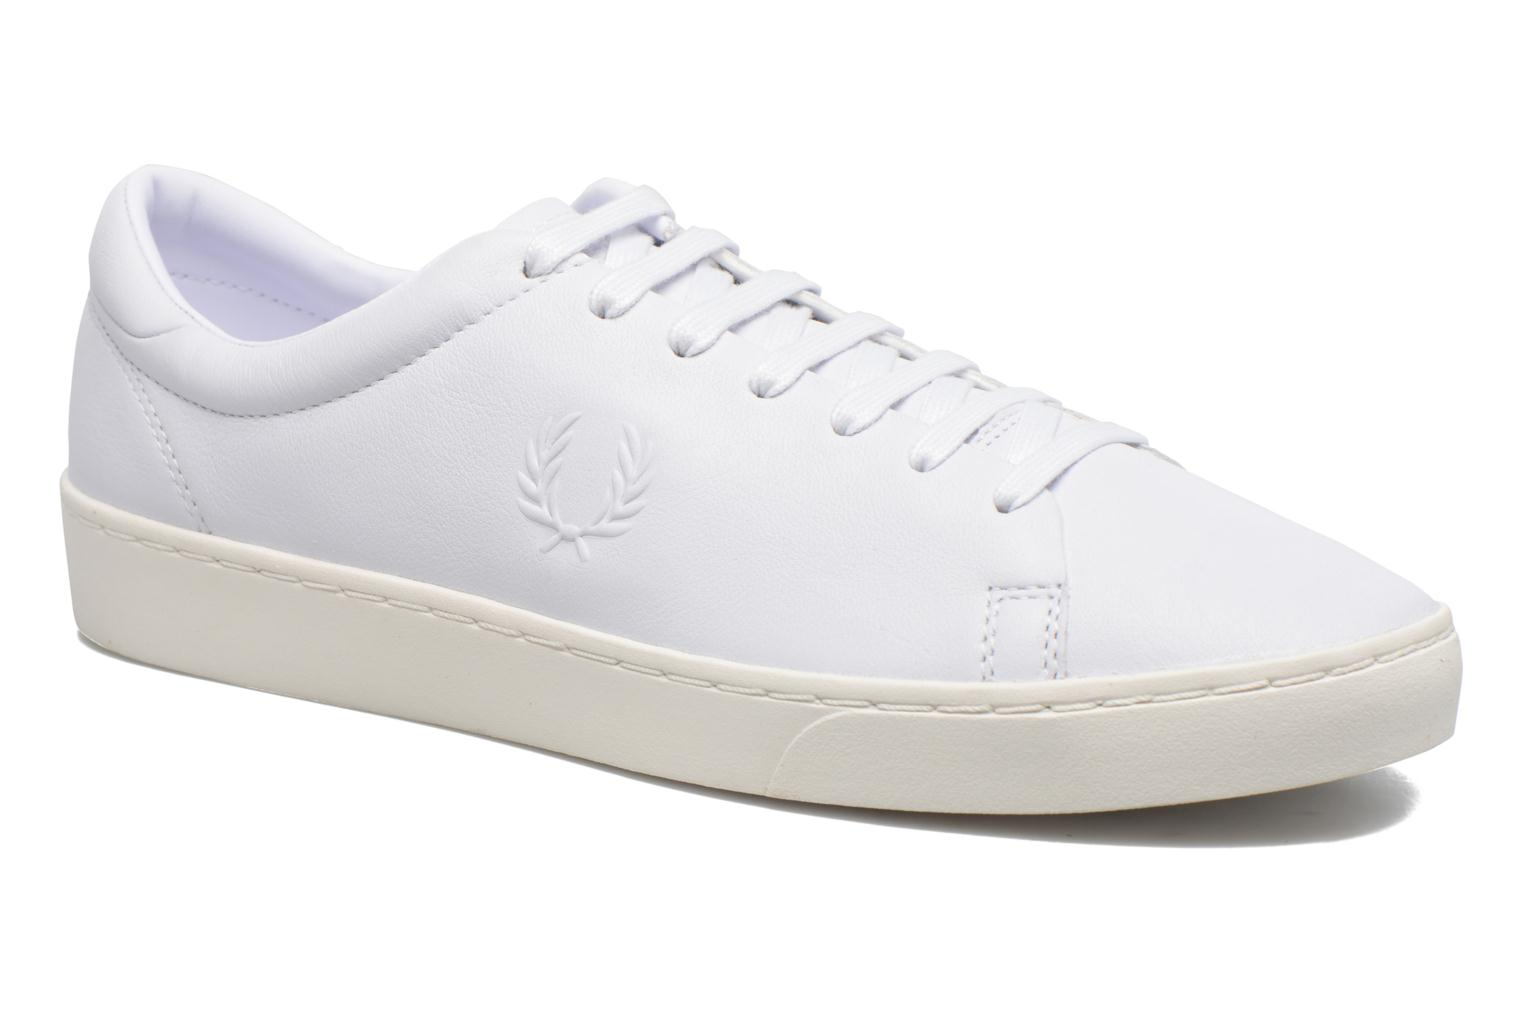 Marques Chaussure homme Fred Perry homme Spencer premium leather White